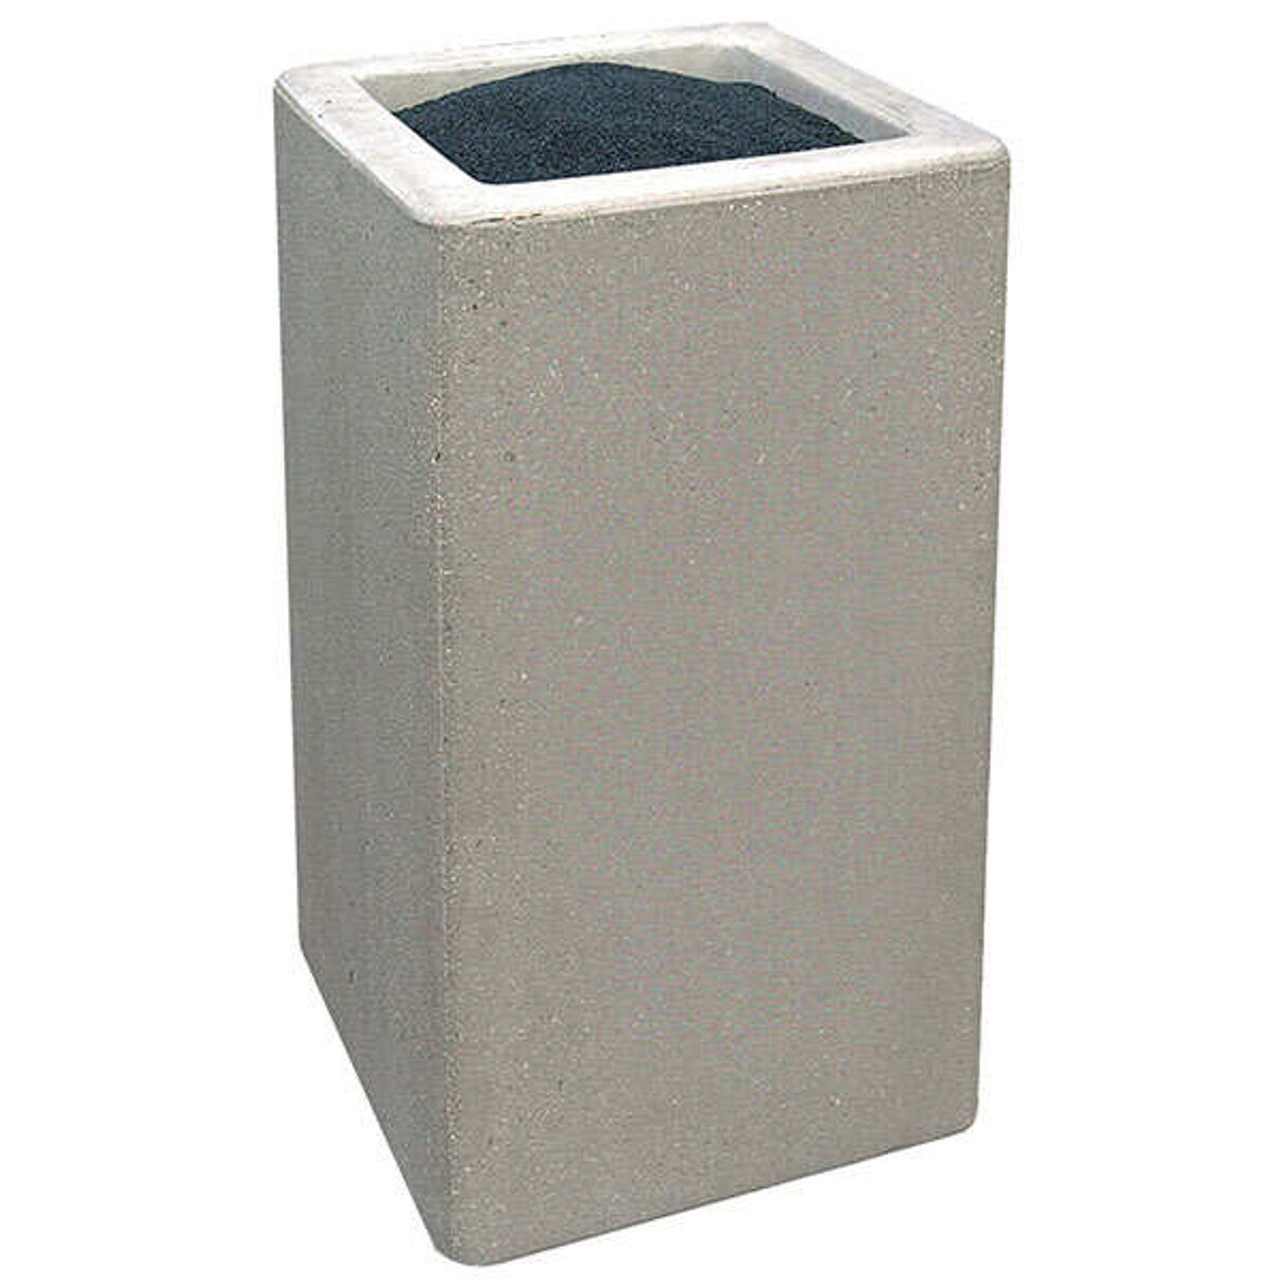 Concrete Ash Urn Outdoor Ashtray Smokers Receptacle TF2040 Weatherstone